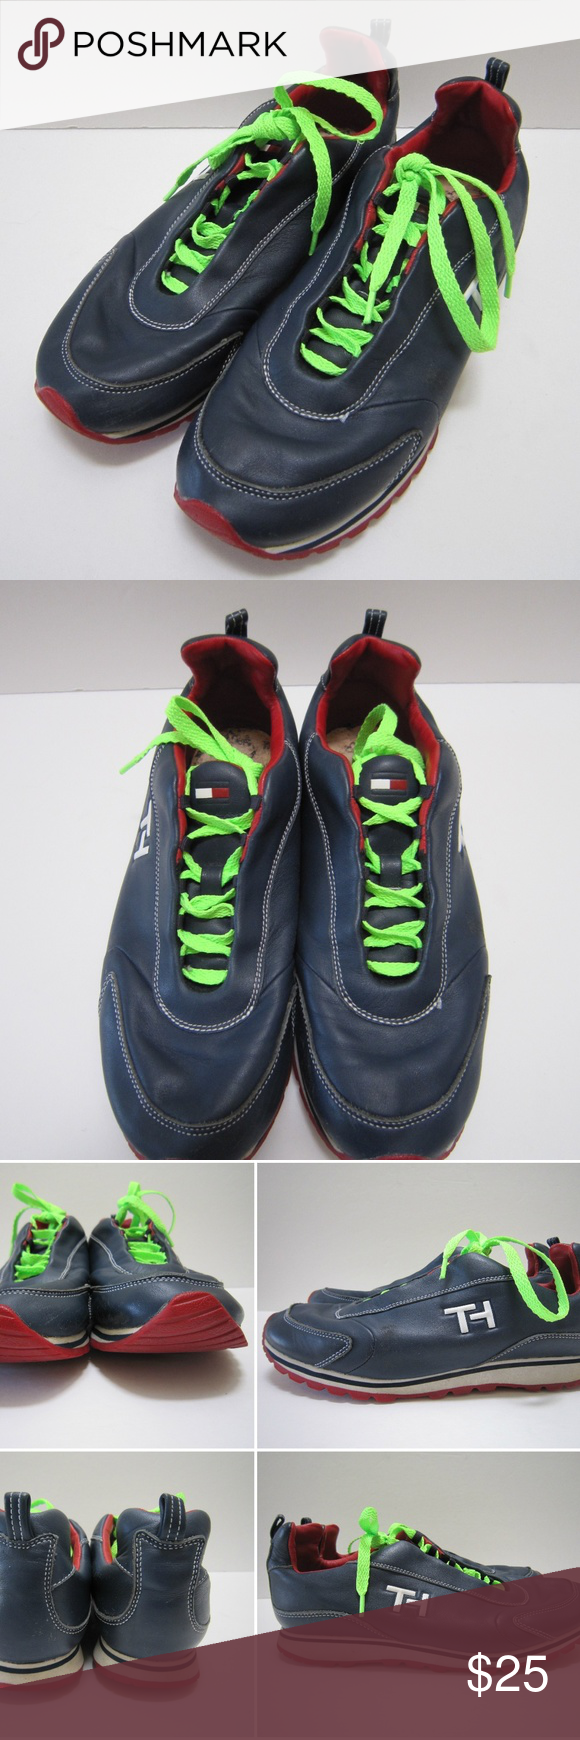 a6a3150e5943cf Vtg Tommy Hilfiger Leather Tennis Shoes Sneakers Vintage 90s Tommy Hilfiger  Logo Womens Blue Leather Tennis